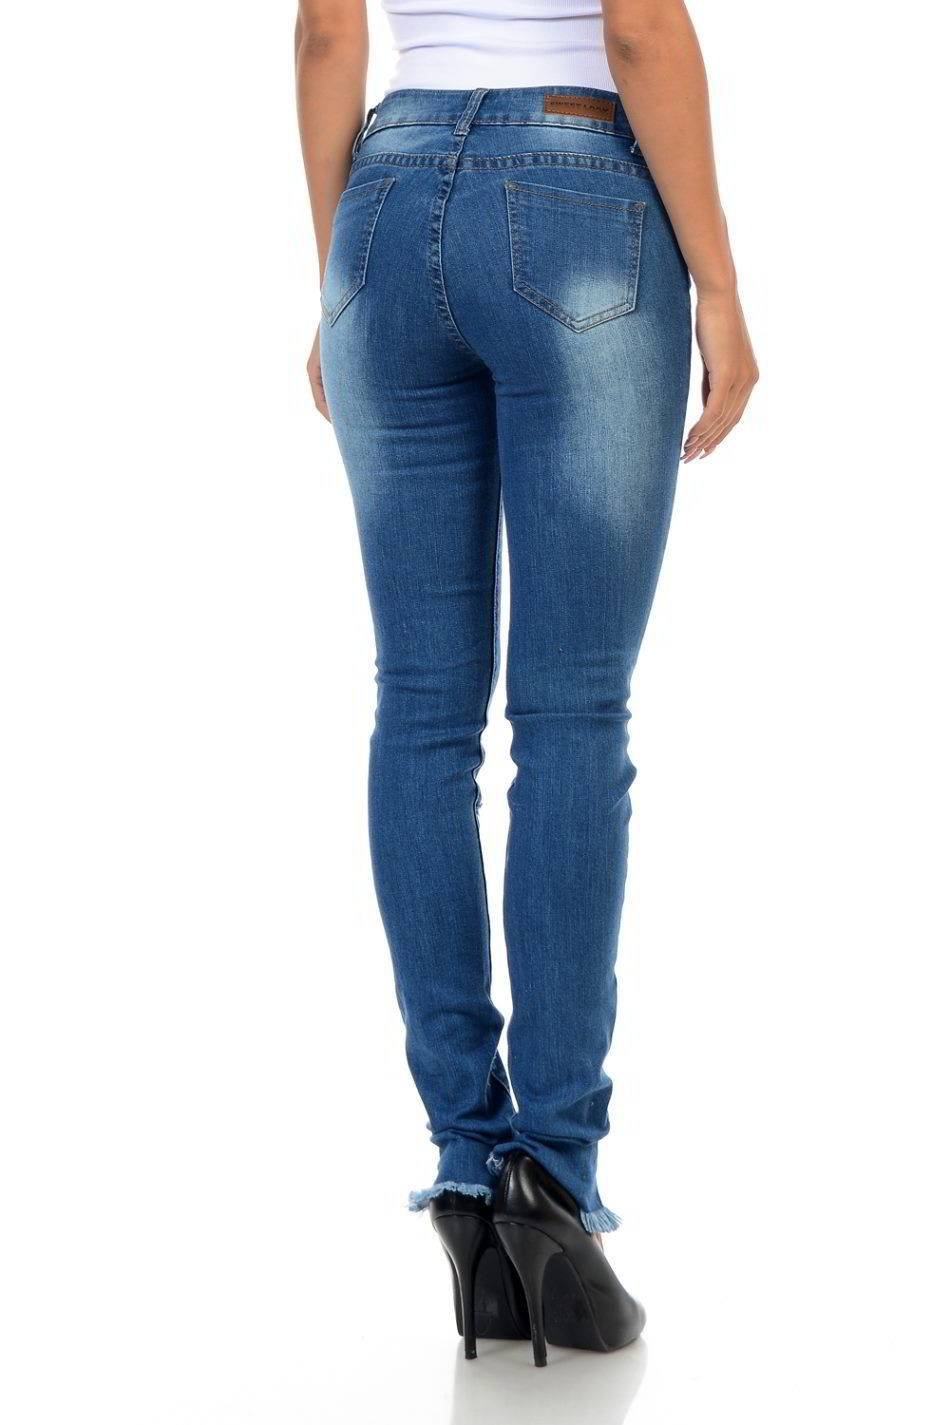 Sweet Look Premium Edition Women S Jeans Sizing 0 15